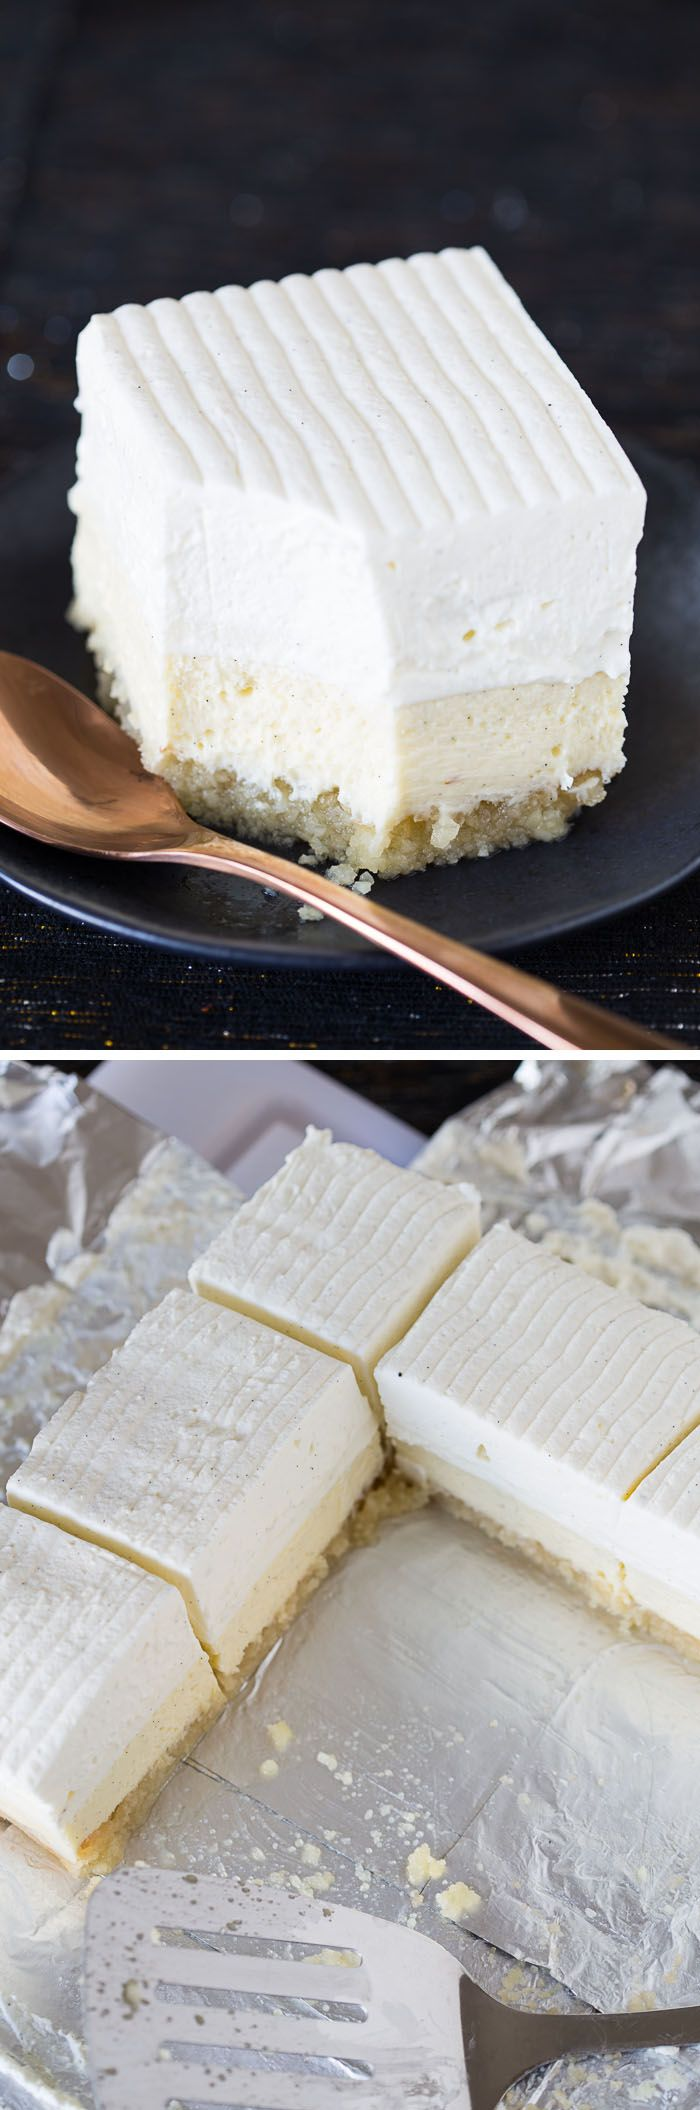 This recipe for Vanilla Bean Cheesecake bars on a buttery macadamia nut crust is easy, decadent, and delicious! A giant, beautiful